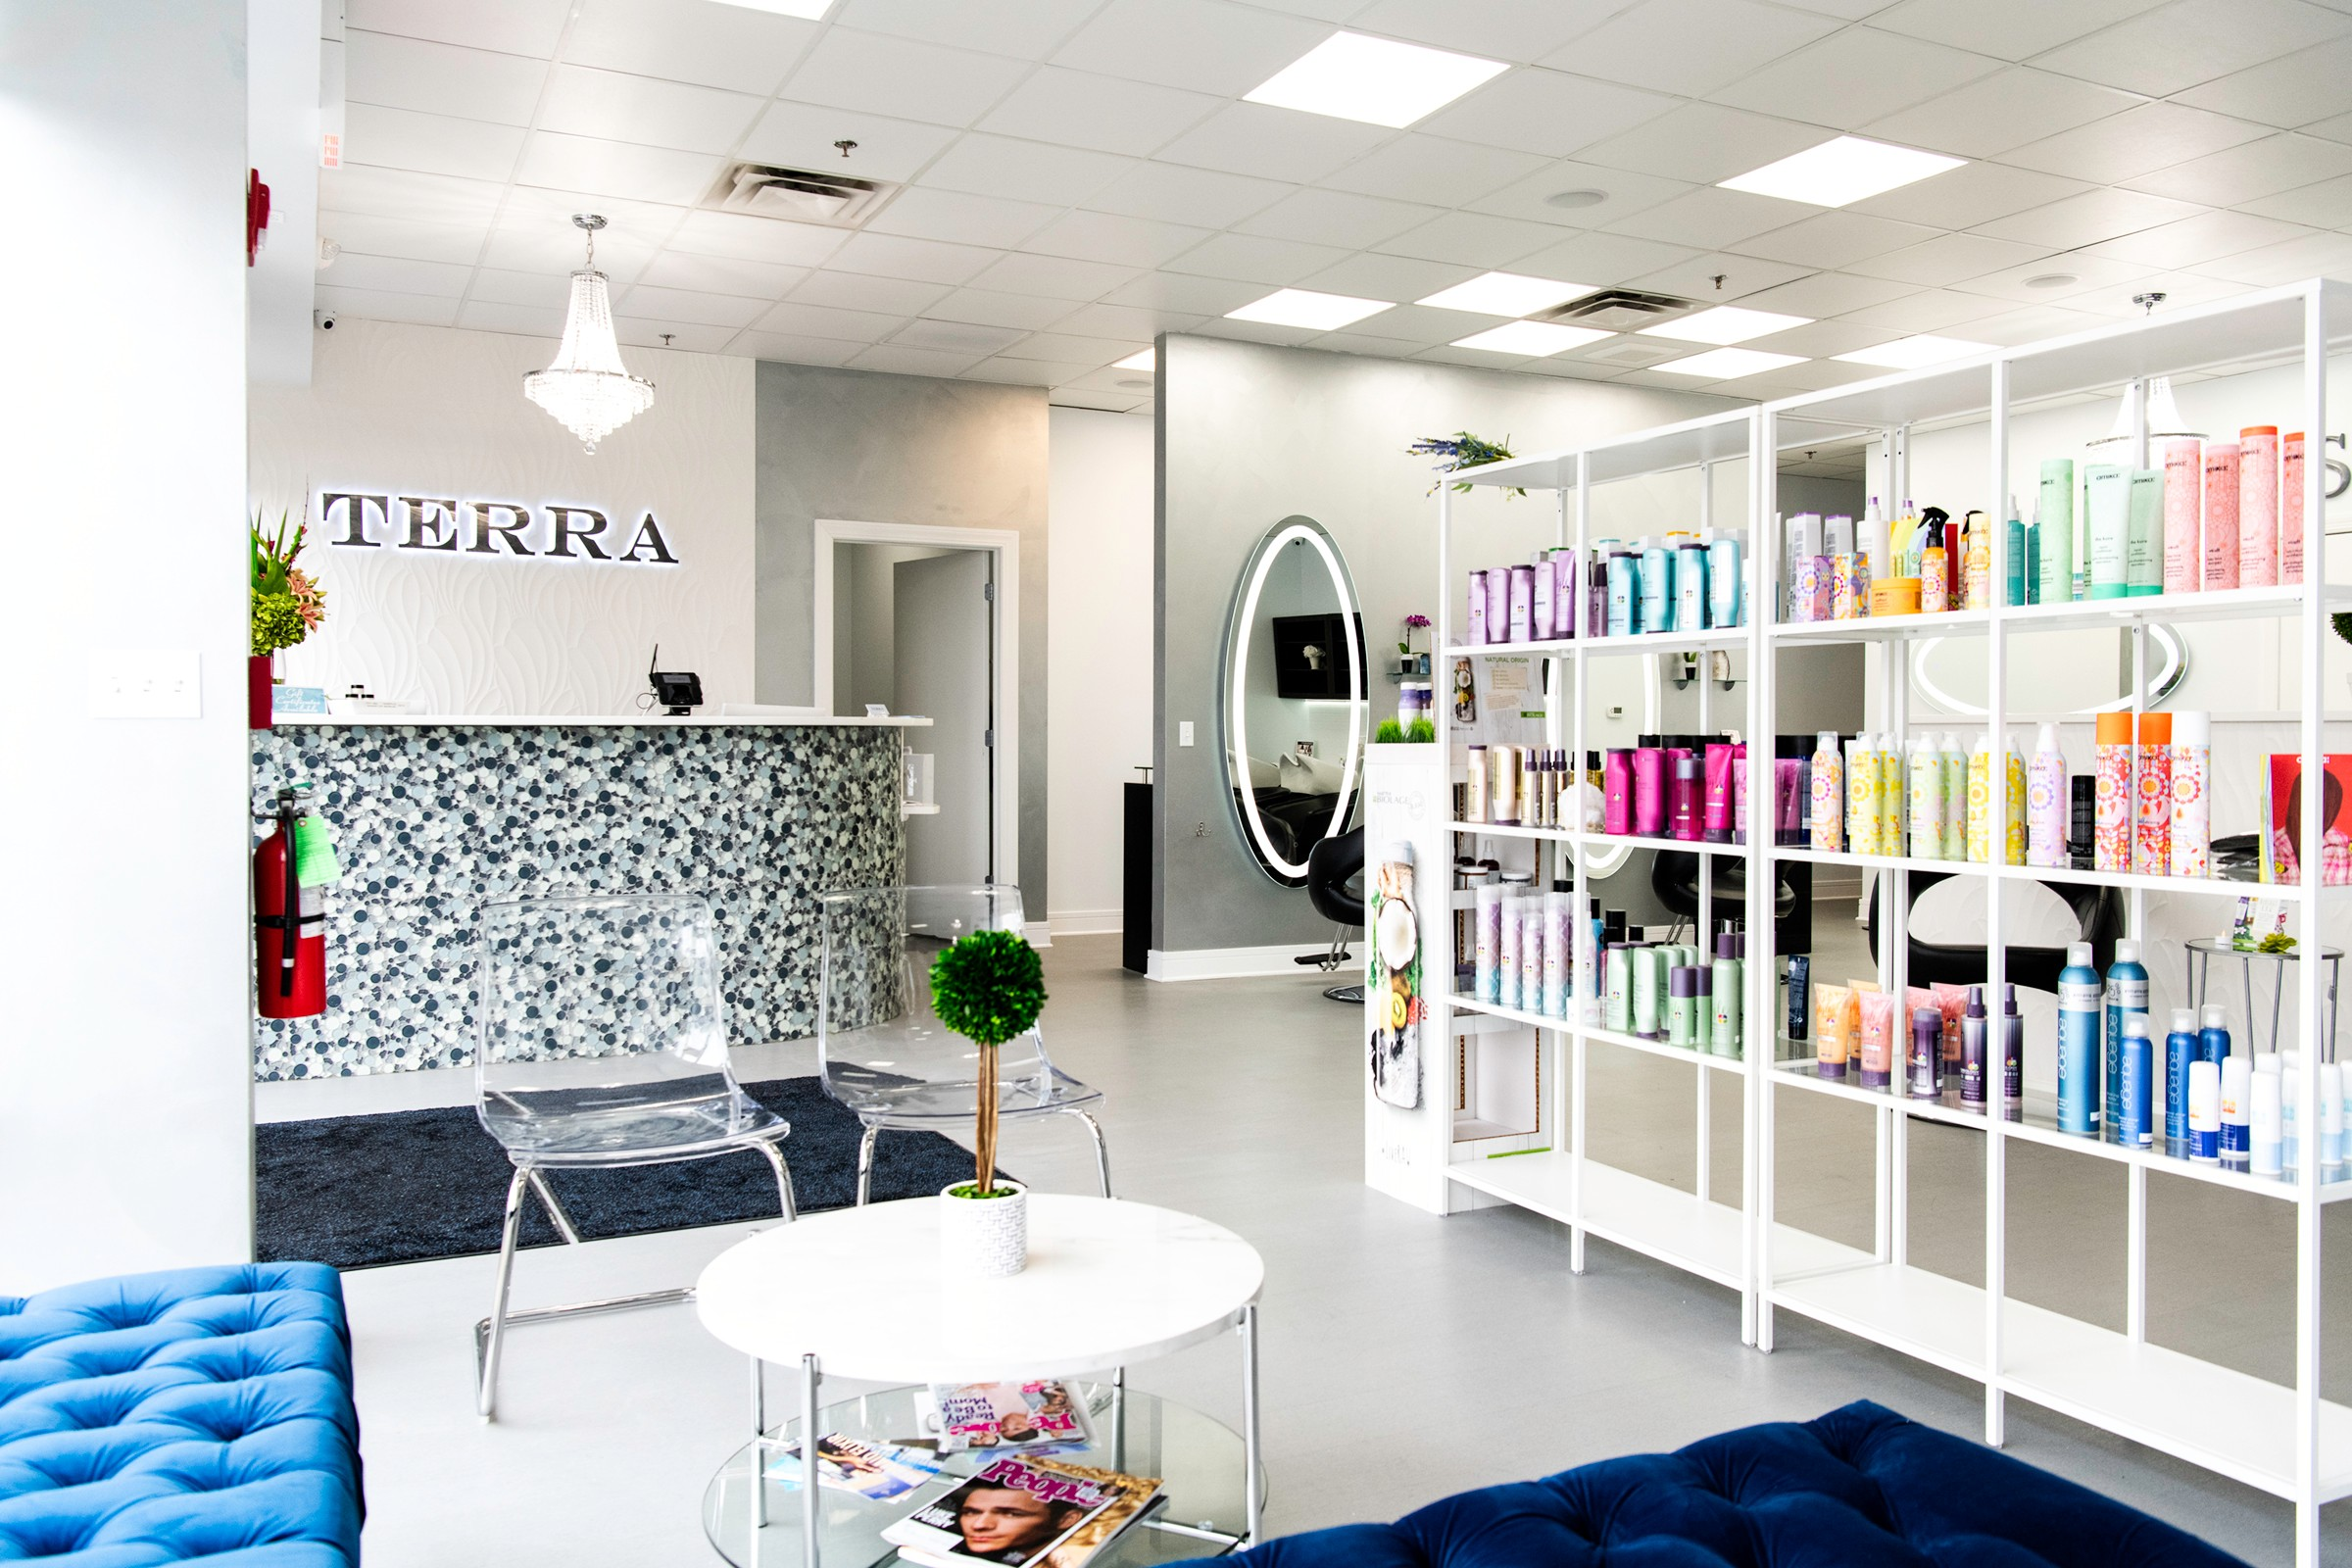 terra northbrook salon spa .jpg